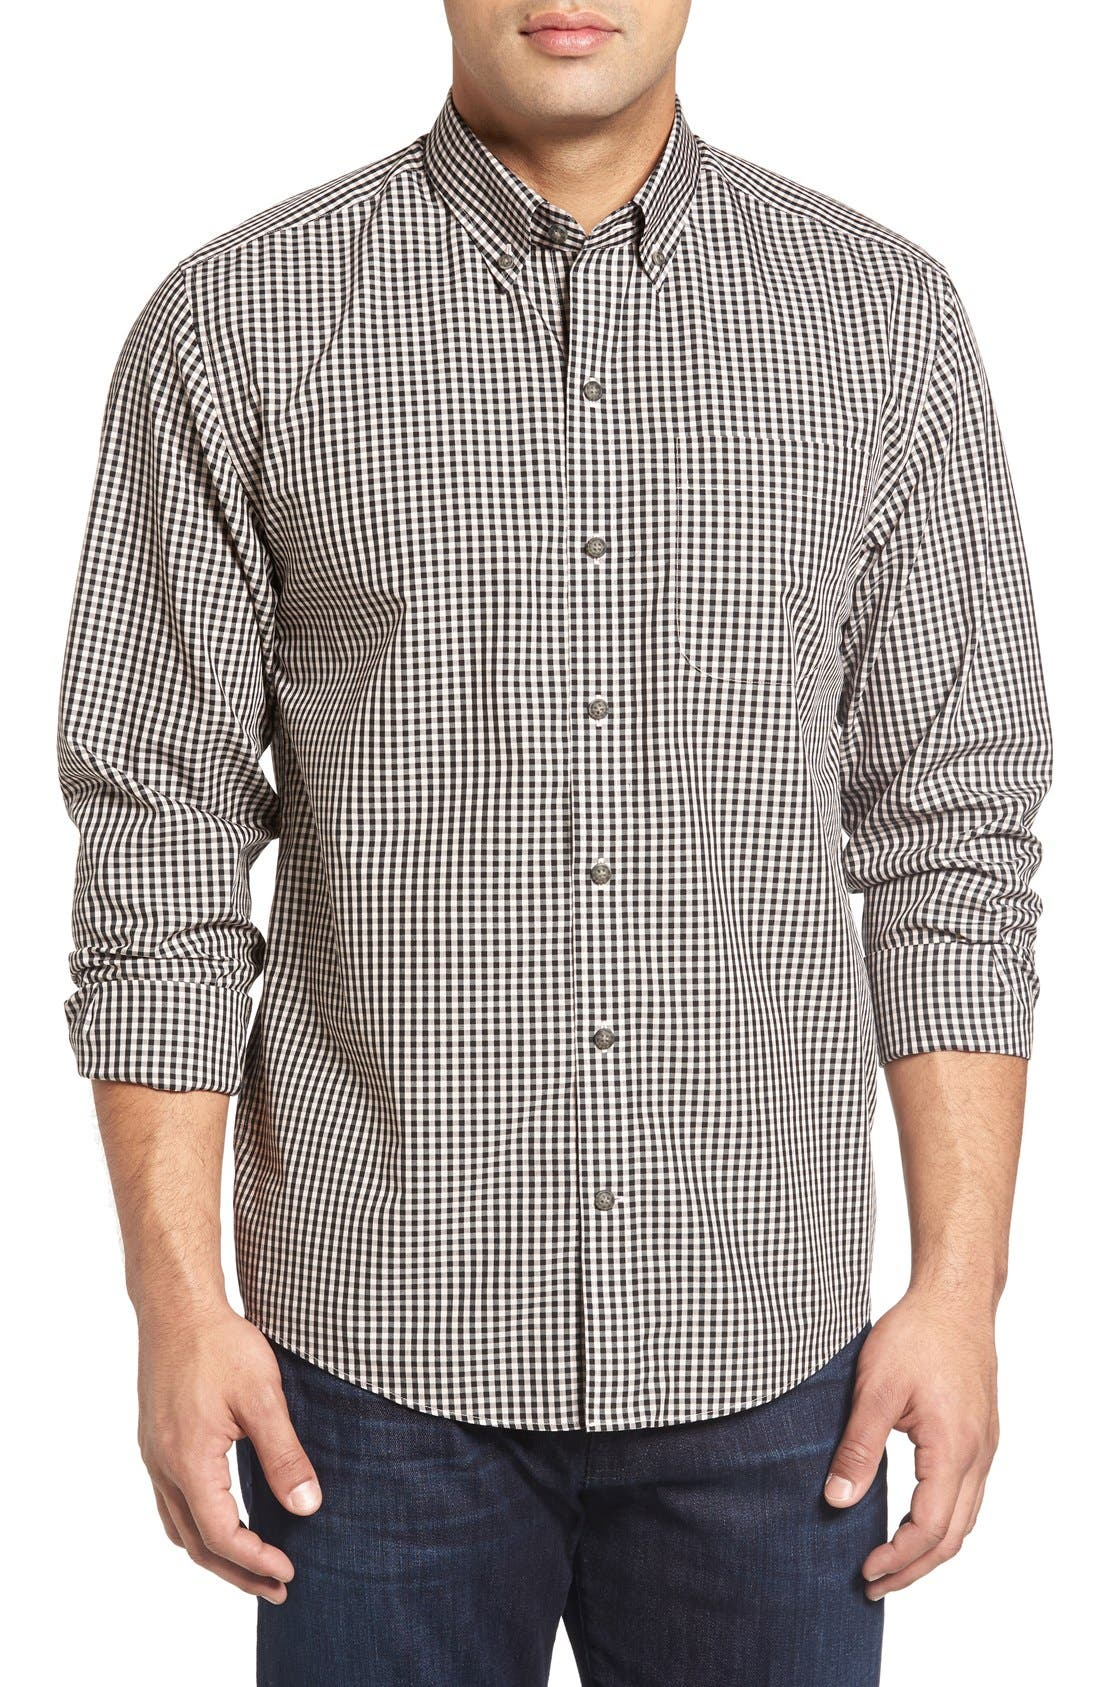 'Willard' Check Sport Shirt,                             Main thumbnail 1, color,                             019